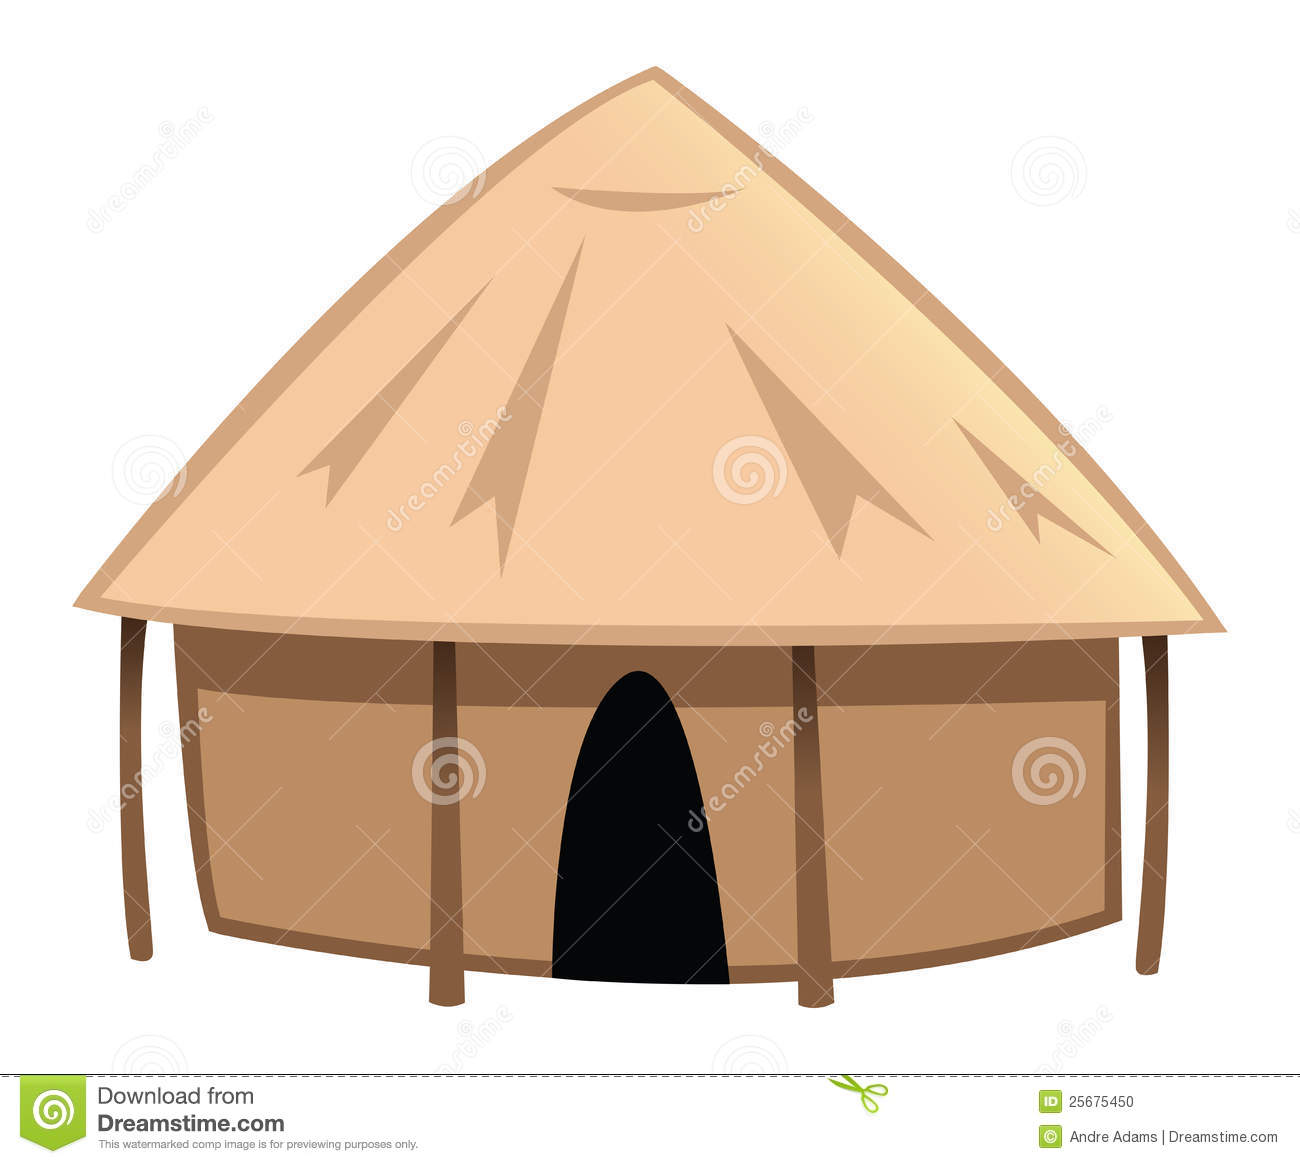 Village hut clipart.